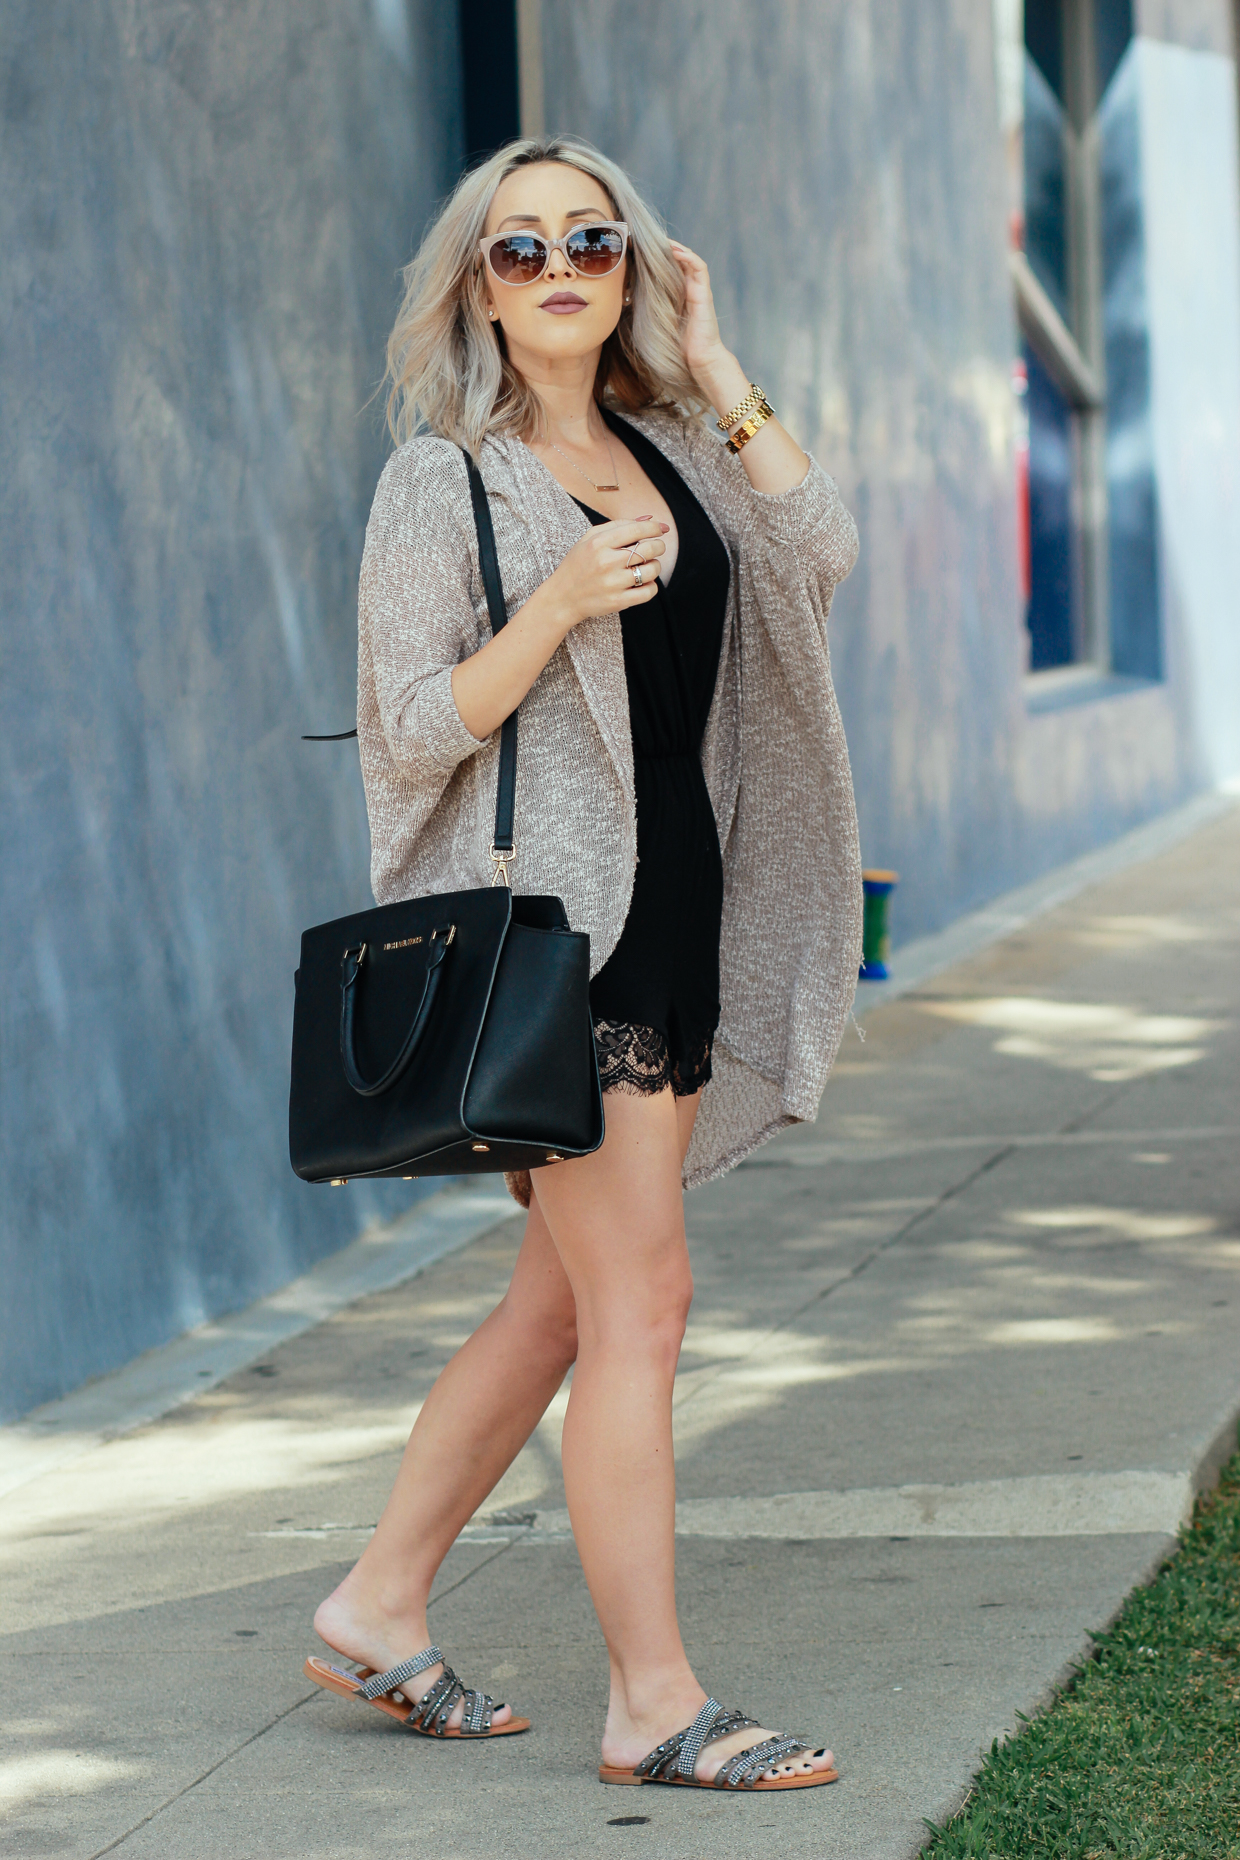 Blondie in the City | Balenciaga Sunglasses, Black Lace Romper, Black Michael Kors Bag,